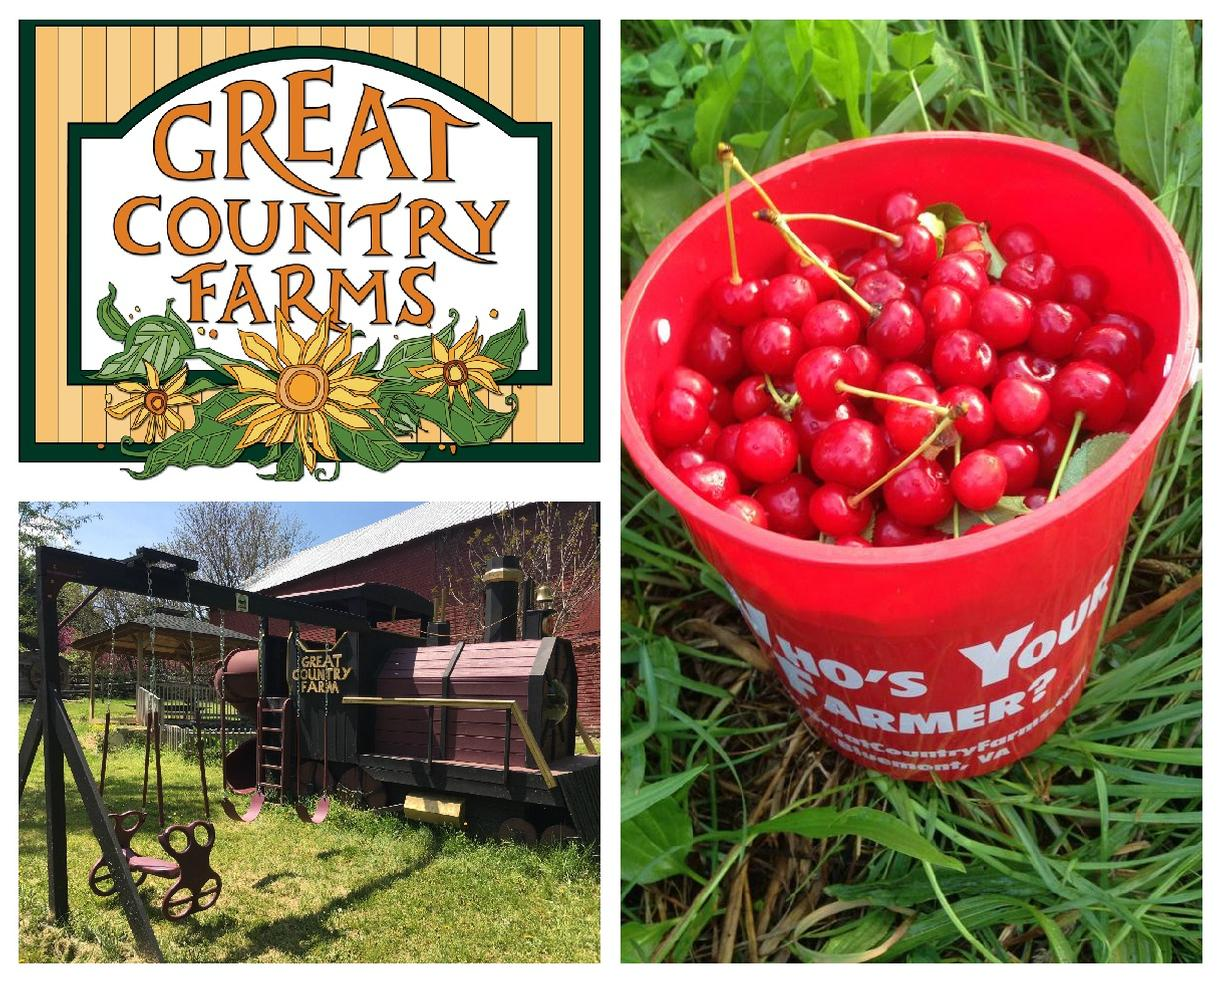 Great Country Farms Summer Admission & U-Pick Produce Voucher